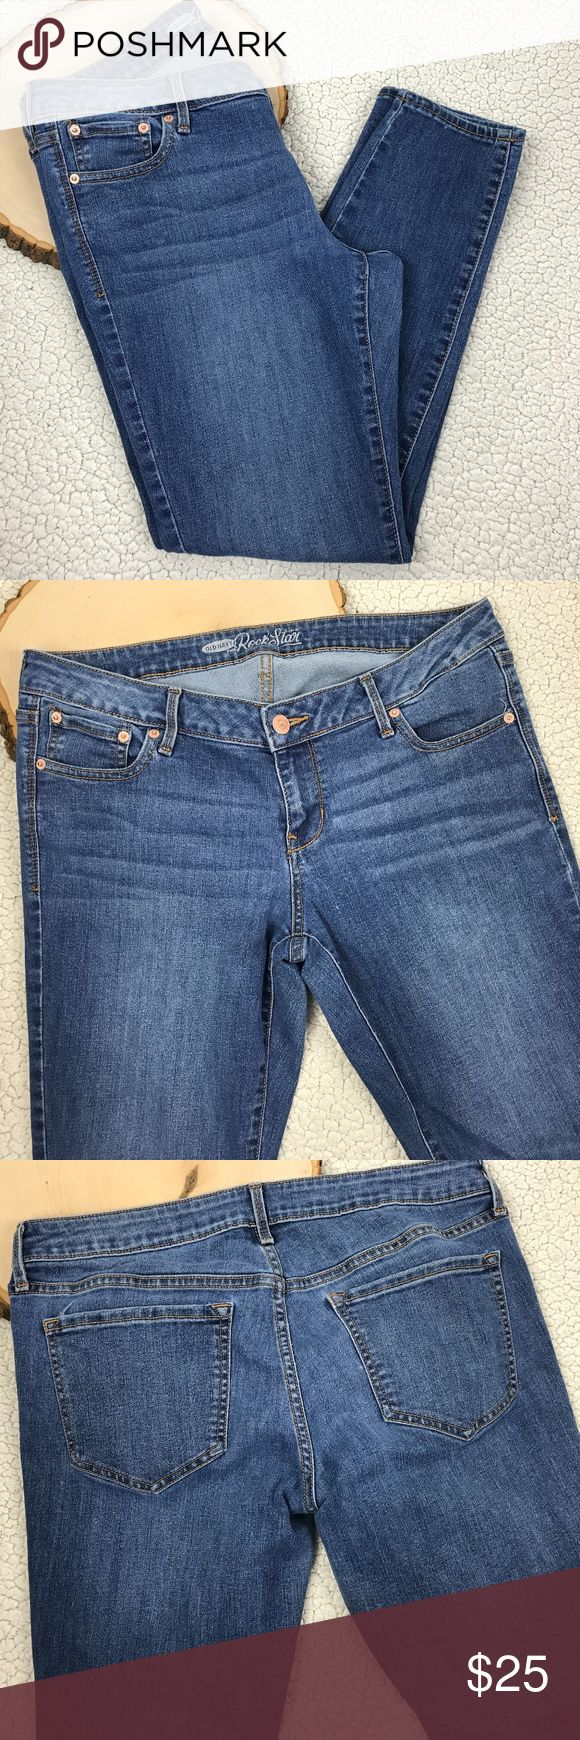 OLD NAVY ROCKSTAR Jeans Size 14 reg Denim Pants OLD NAVY ROCKSTAR Jeans Size 14 regular Denim Pants Women's Casual Fashion   Gently Worn - PA83 - Measurements (FLAT LAY in inches) Waist:18  Inseam: 29  Please see photos for detail. Old Navy Jeans